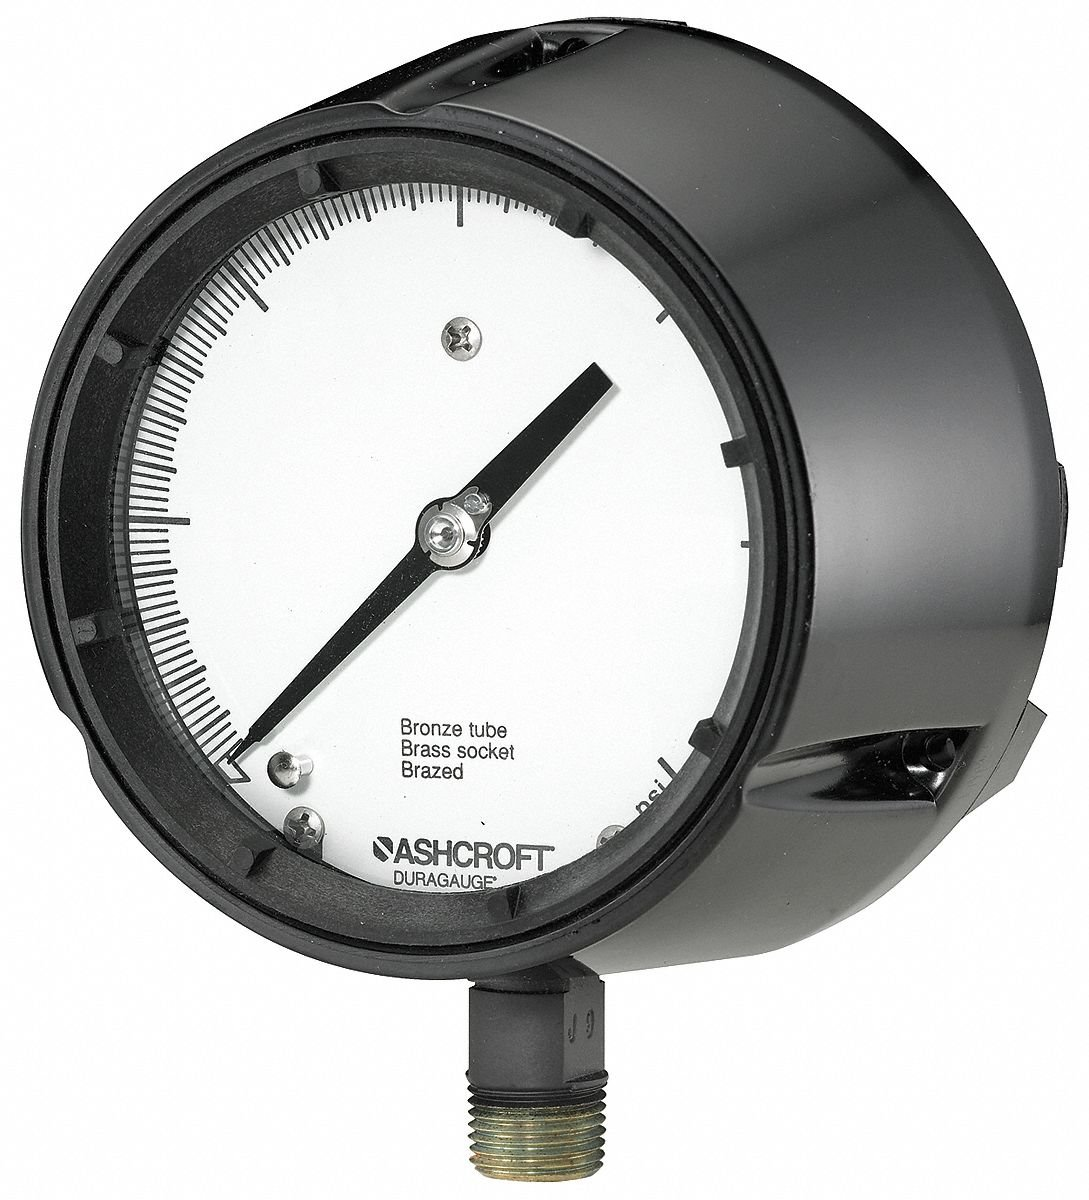 Ashcroft 4-1/2'' Process Pressure Gauge, 0 to 300 psi 451259SD04L300# - 1 Each